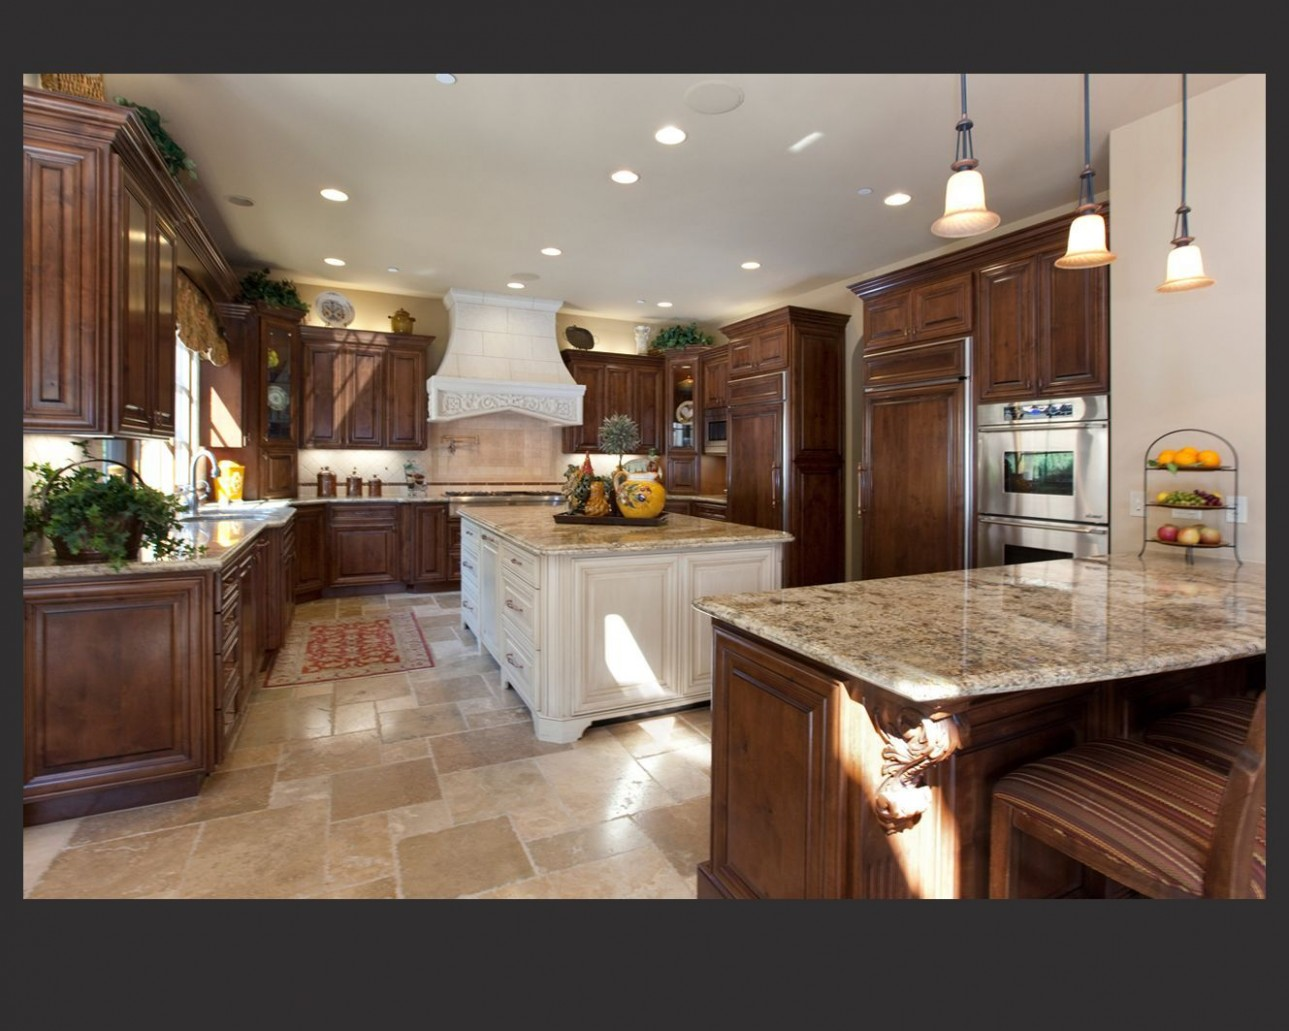 11 Dark Kitchens with Dark Wood OR Black Kitchen Cabinets (11  - Kitchen Cabinet Color Trends 2012